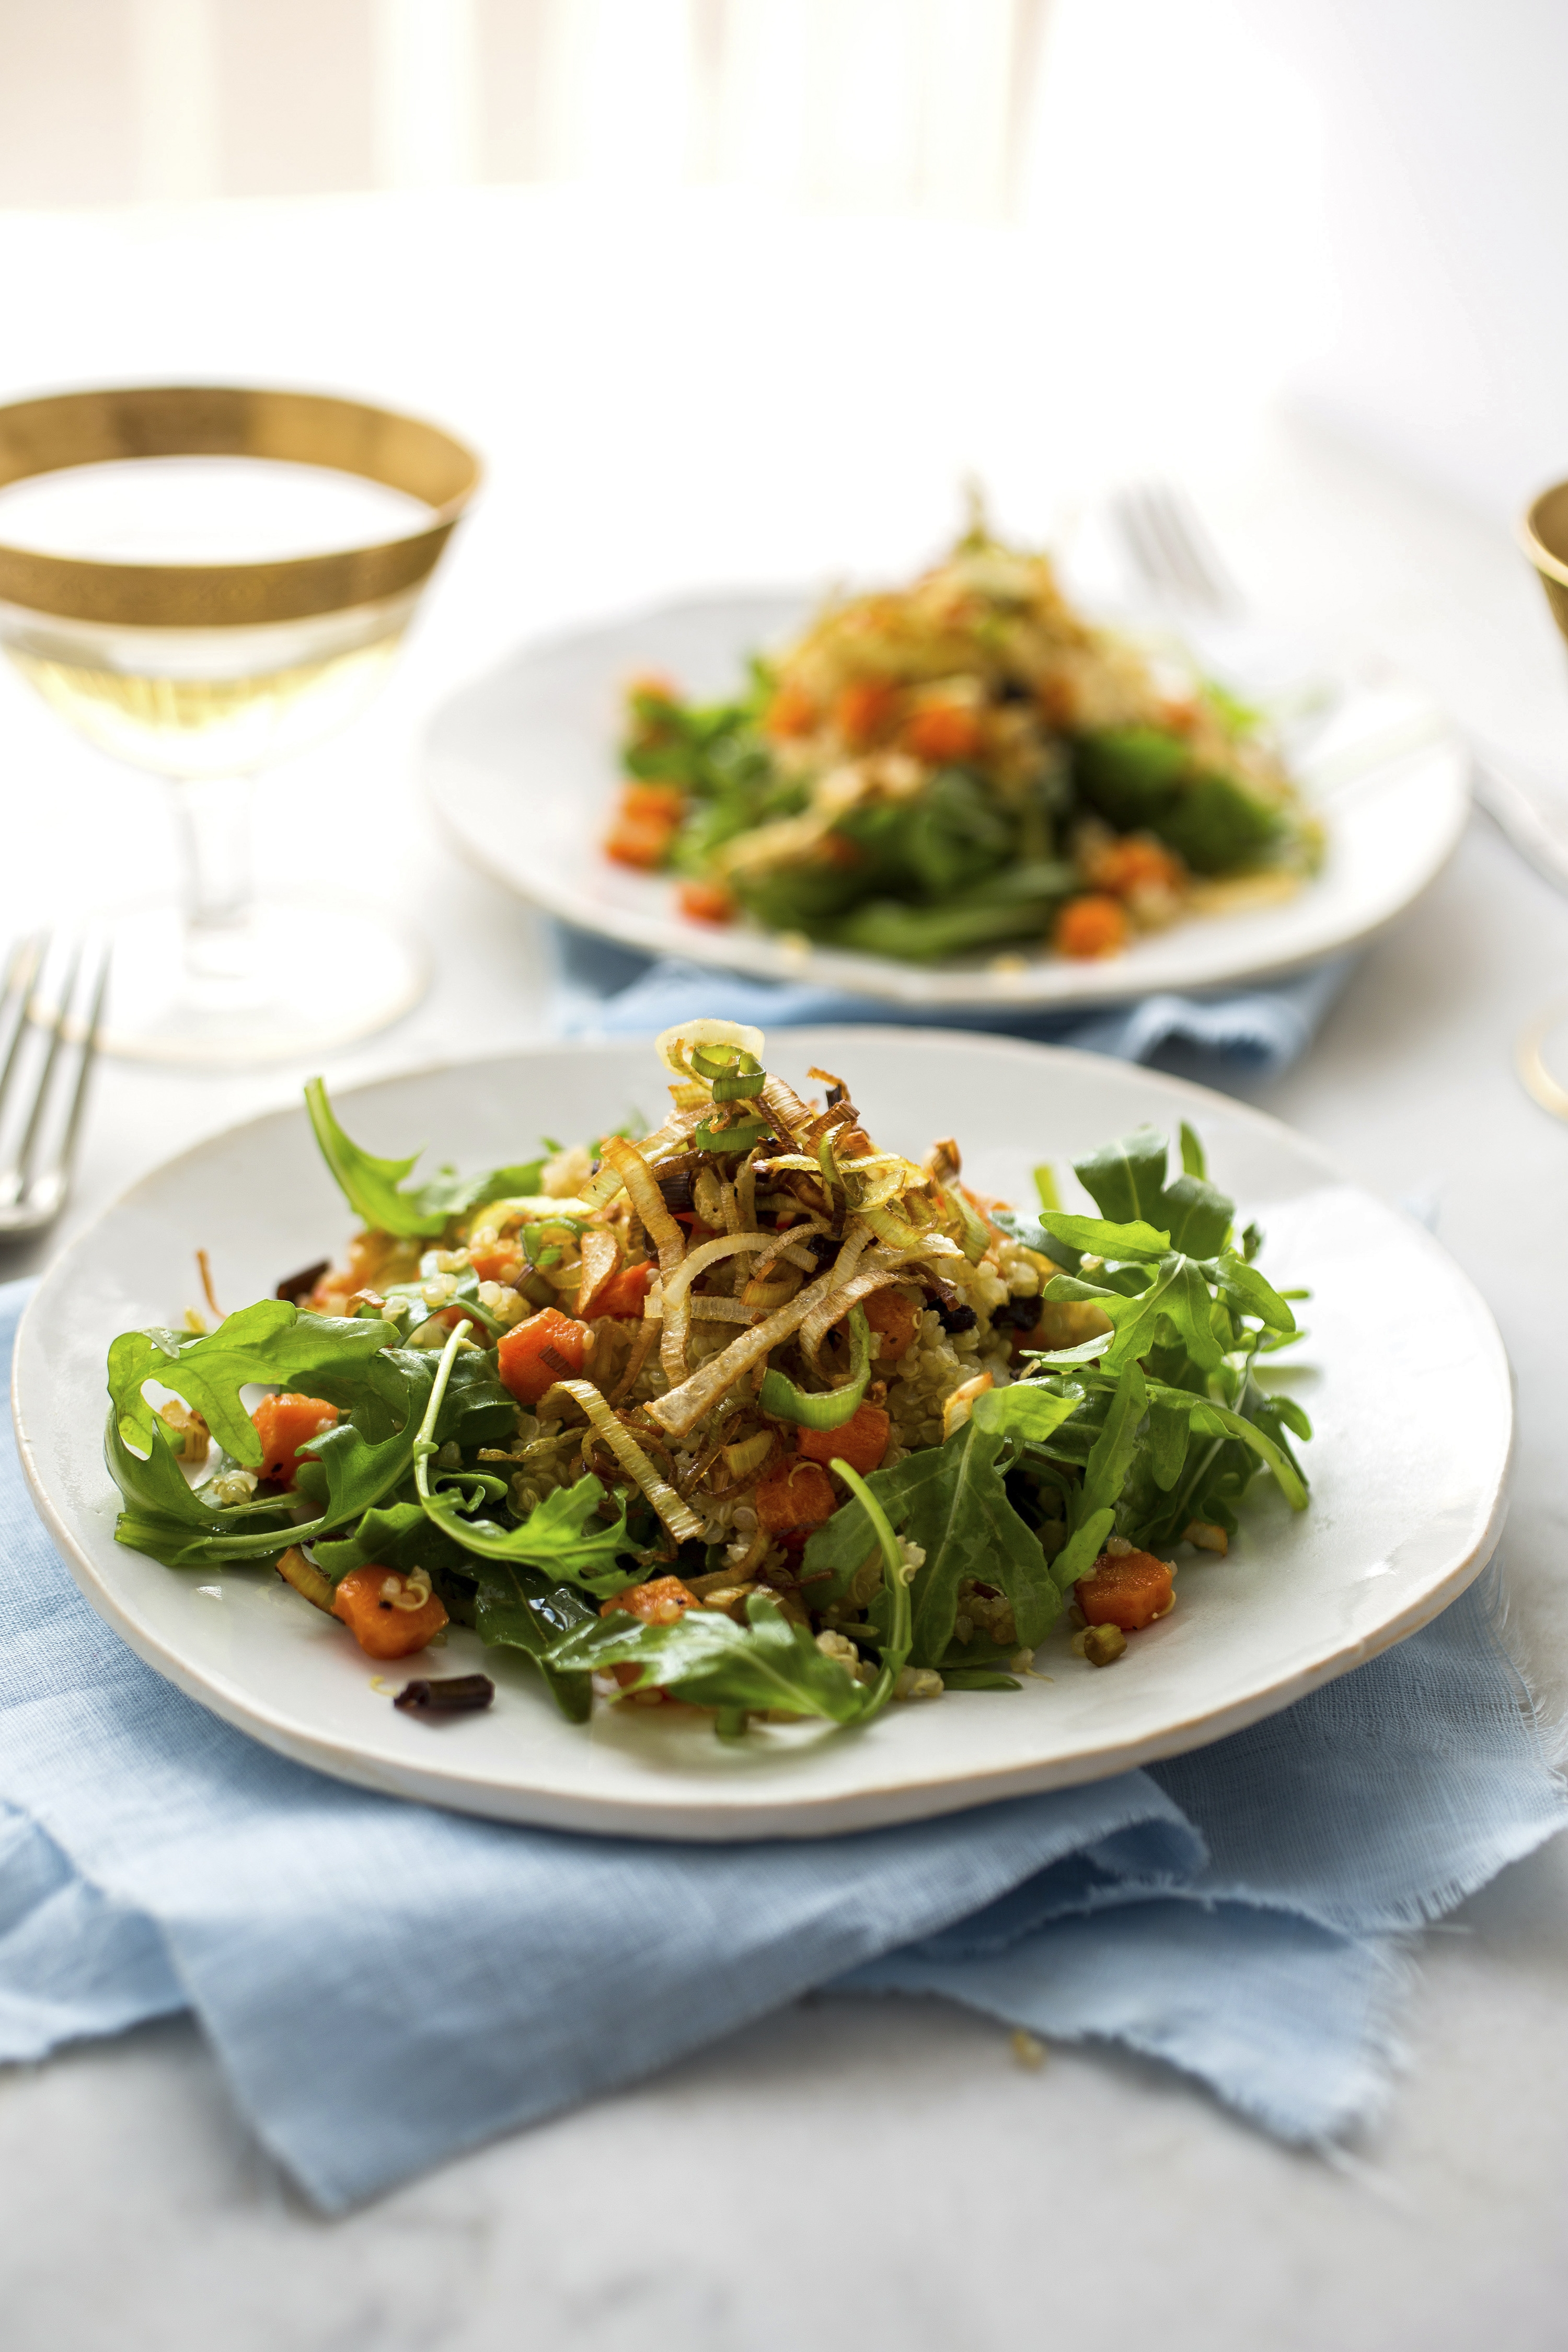 Quinoa salad with roasted carrots and frizzled leeks also includes currants, arugula and a pomegranate dressing.